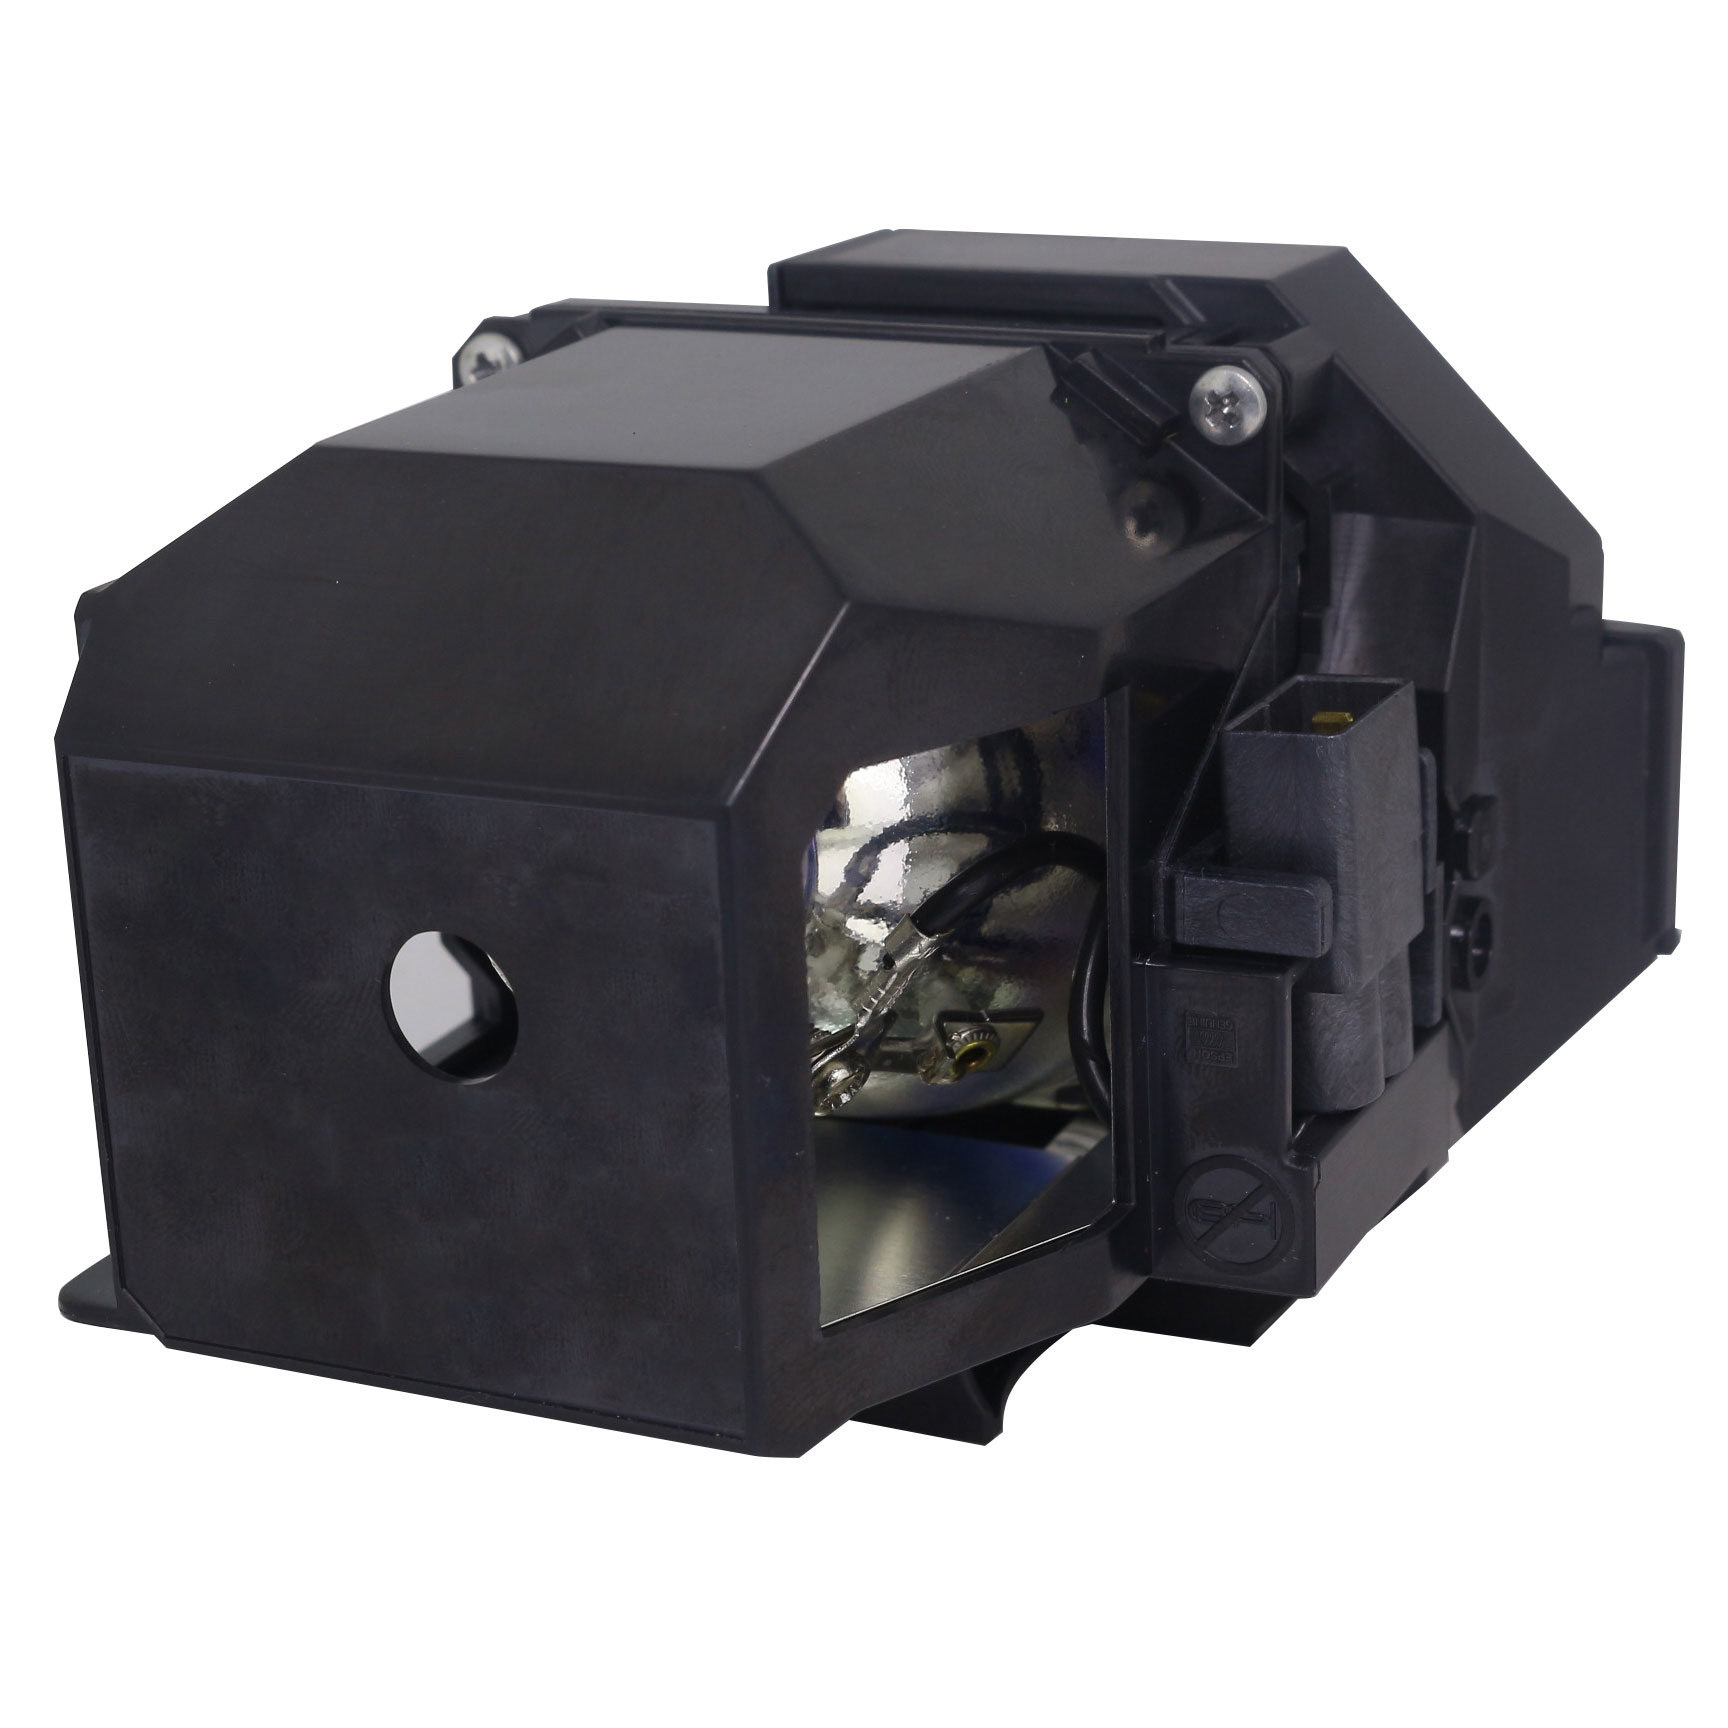 Original Osram Projector Lamp Replacement with Housing for Epson V13H010L96 - image 2 of 5